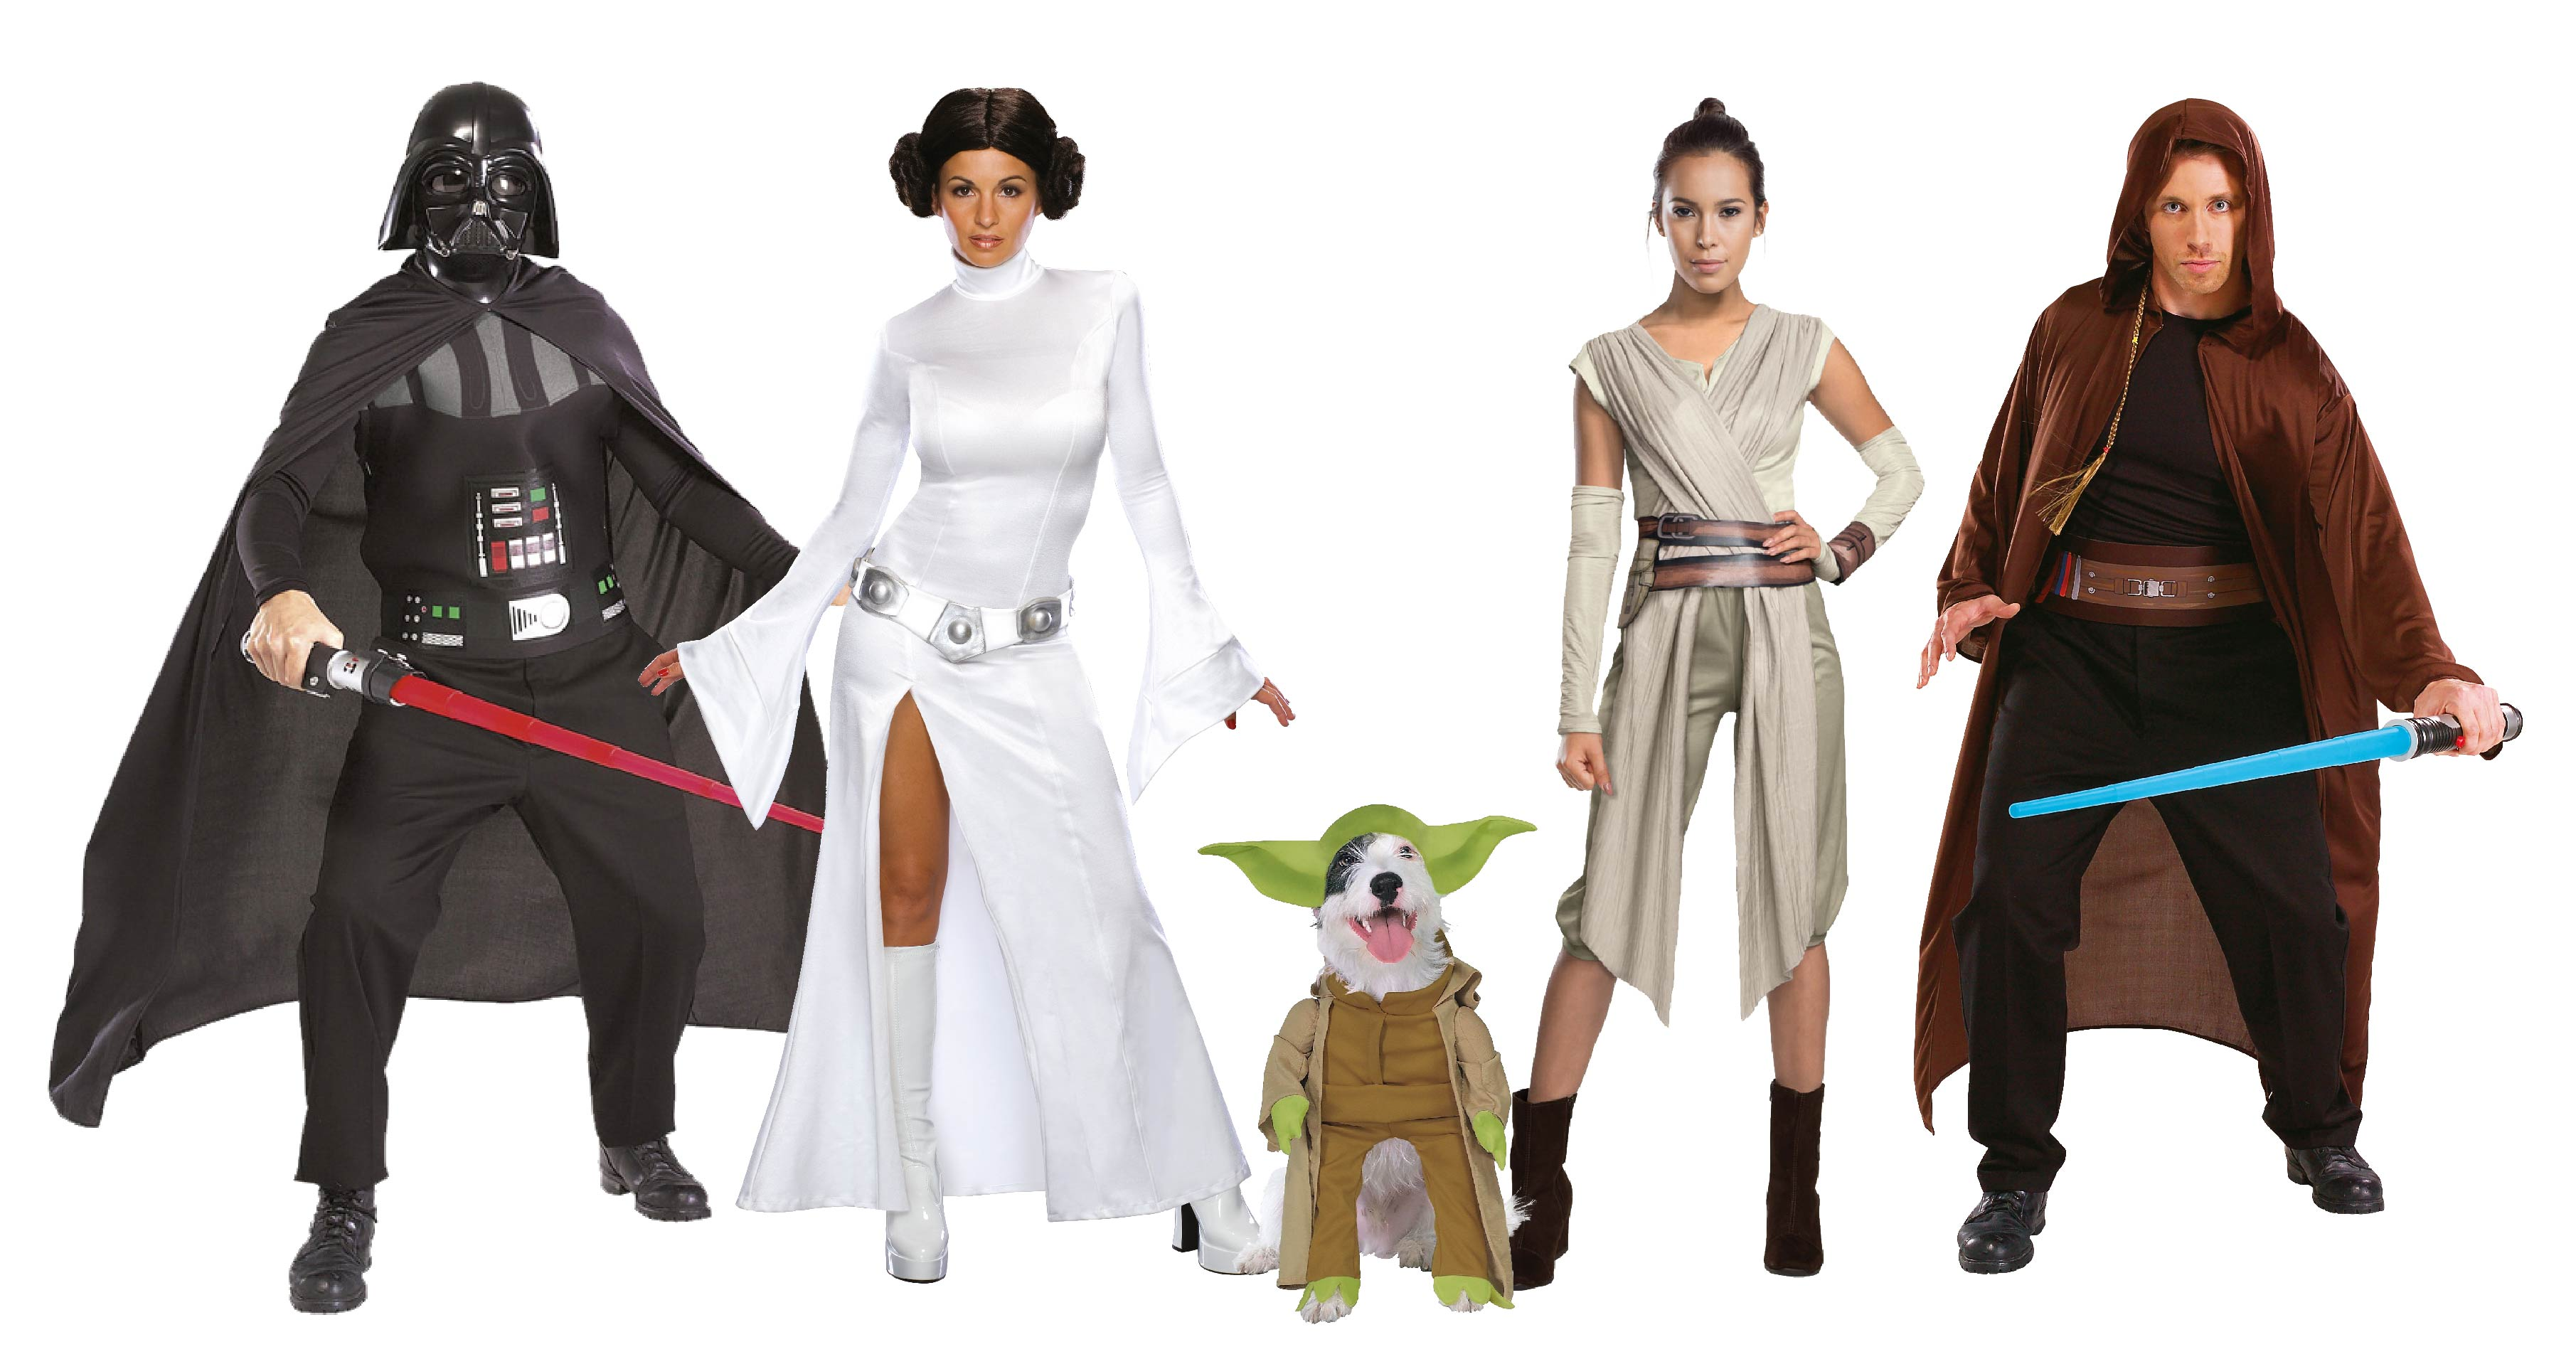 Adults wearing Star Wars group costume including jedi robe, Darth Vader, Yoda, Princess Leia and Rey.